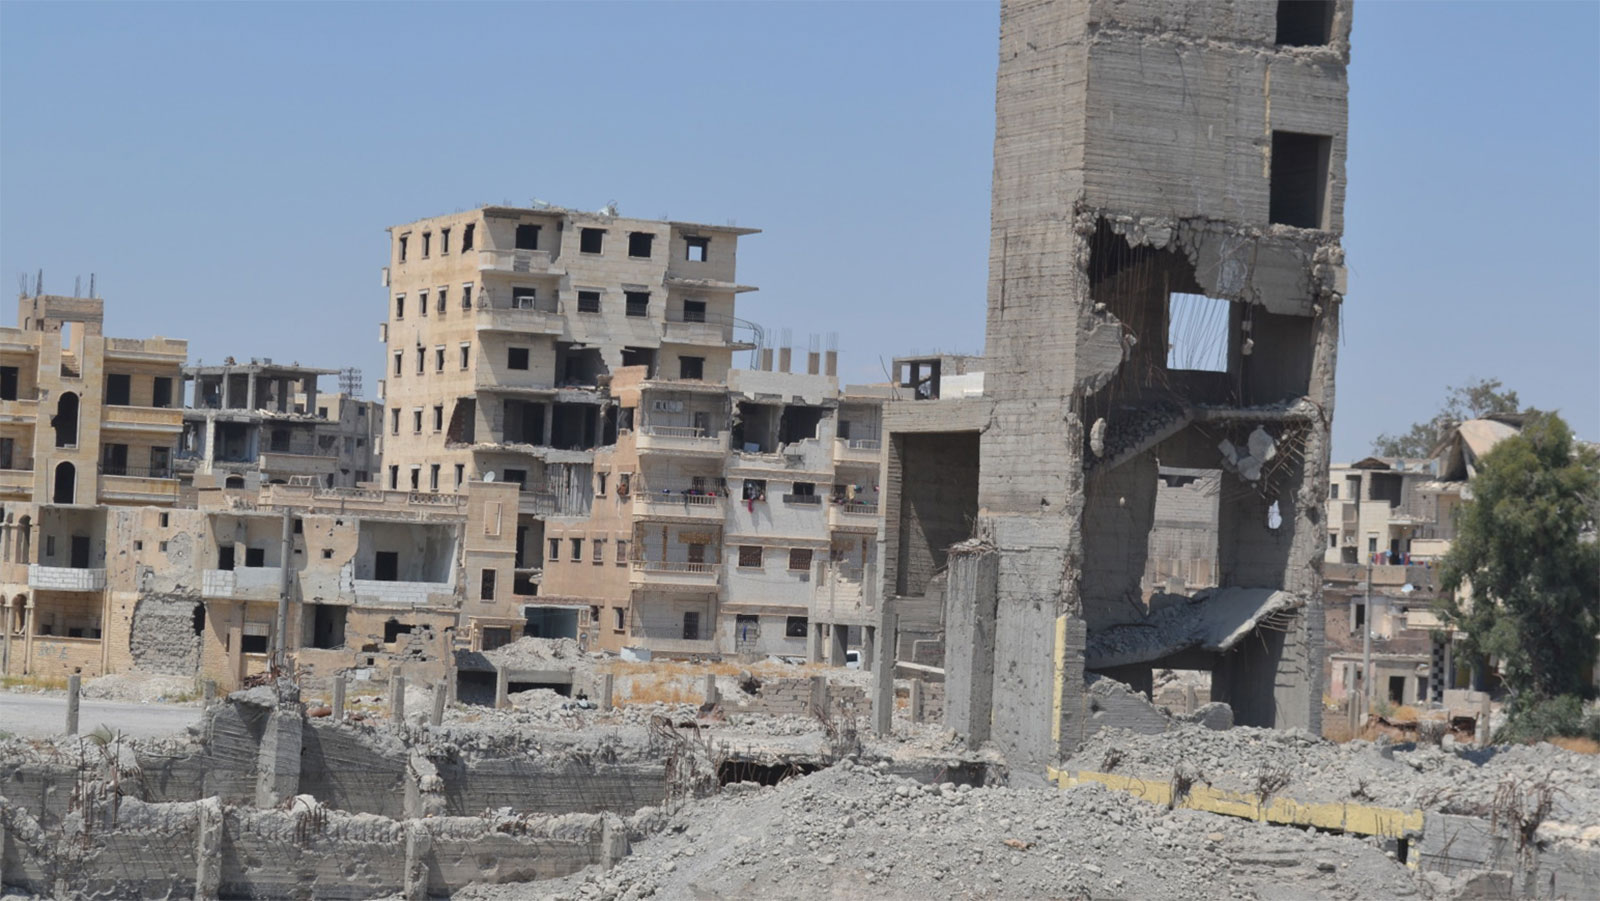 City-landscape-damaged-by-the-use-of-explosive-weapons-in-populated-areas-in-Syria